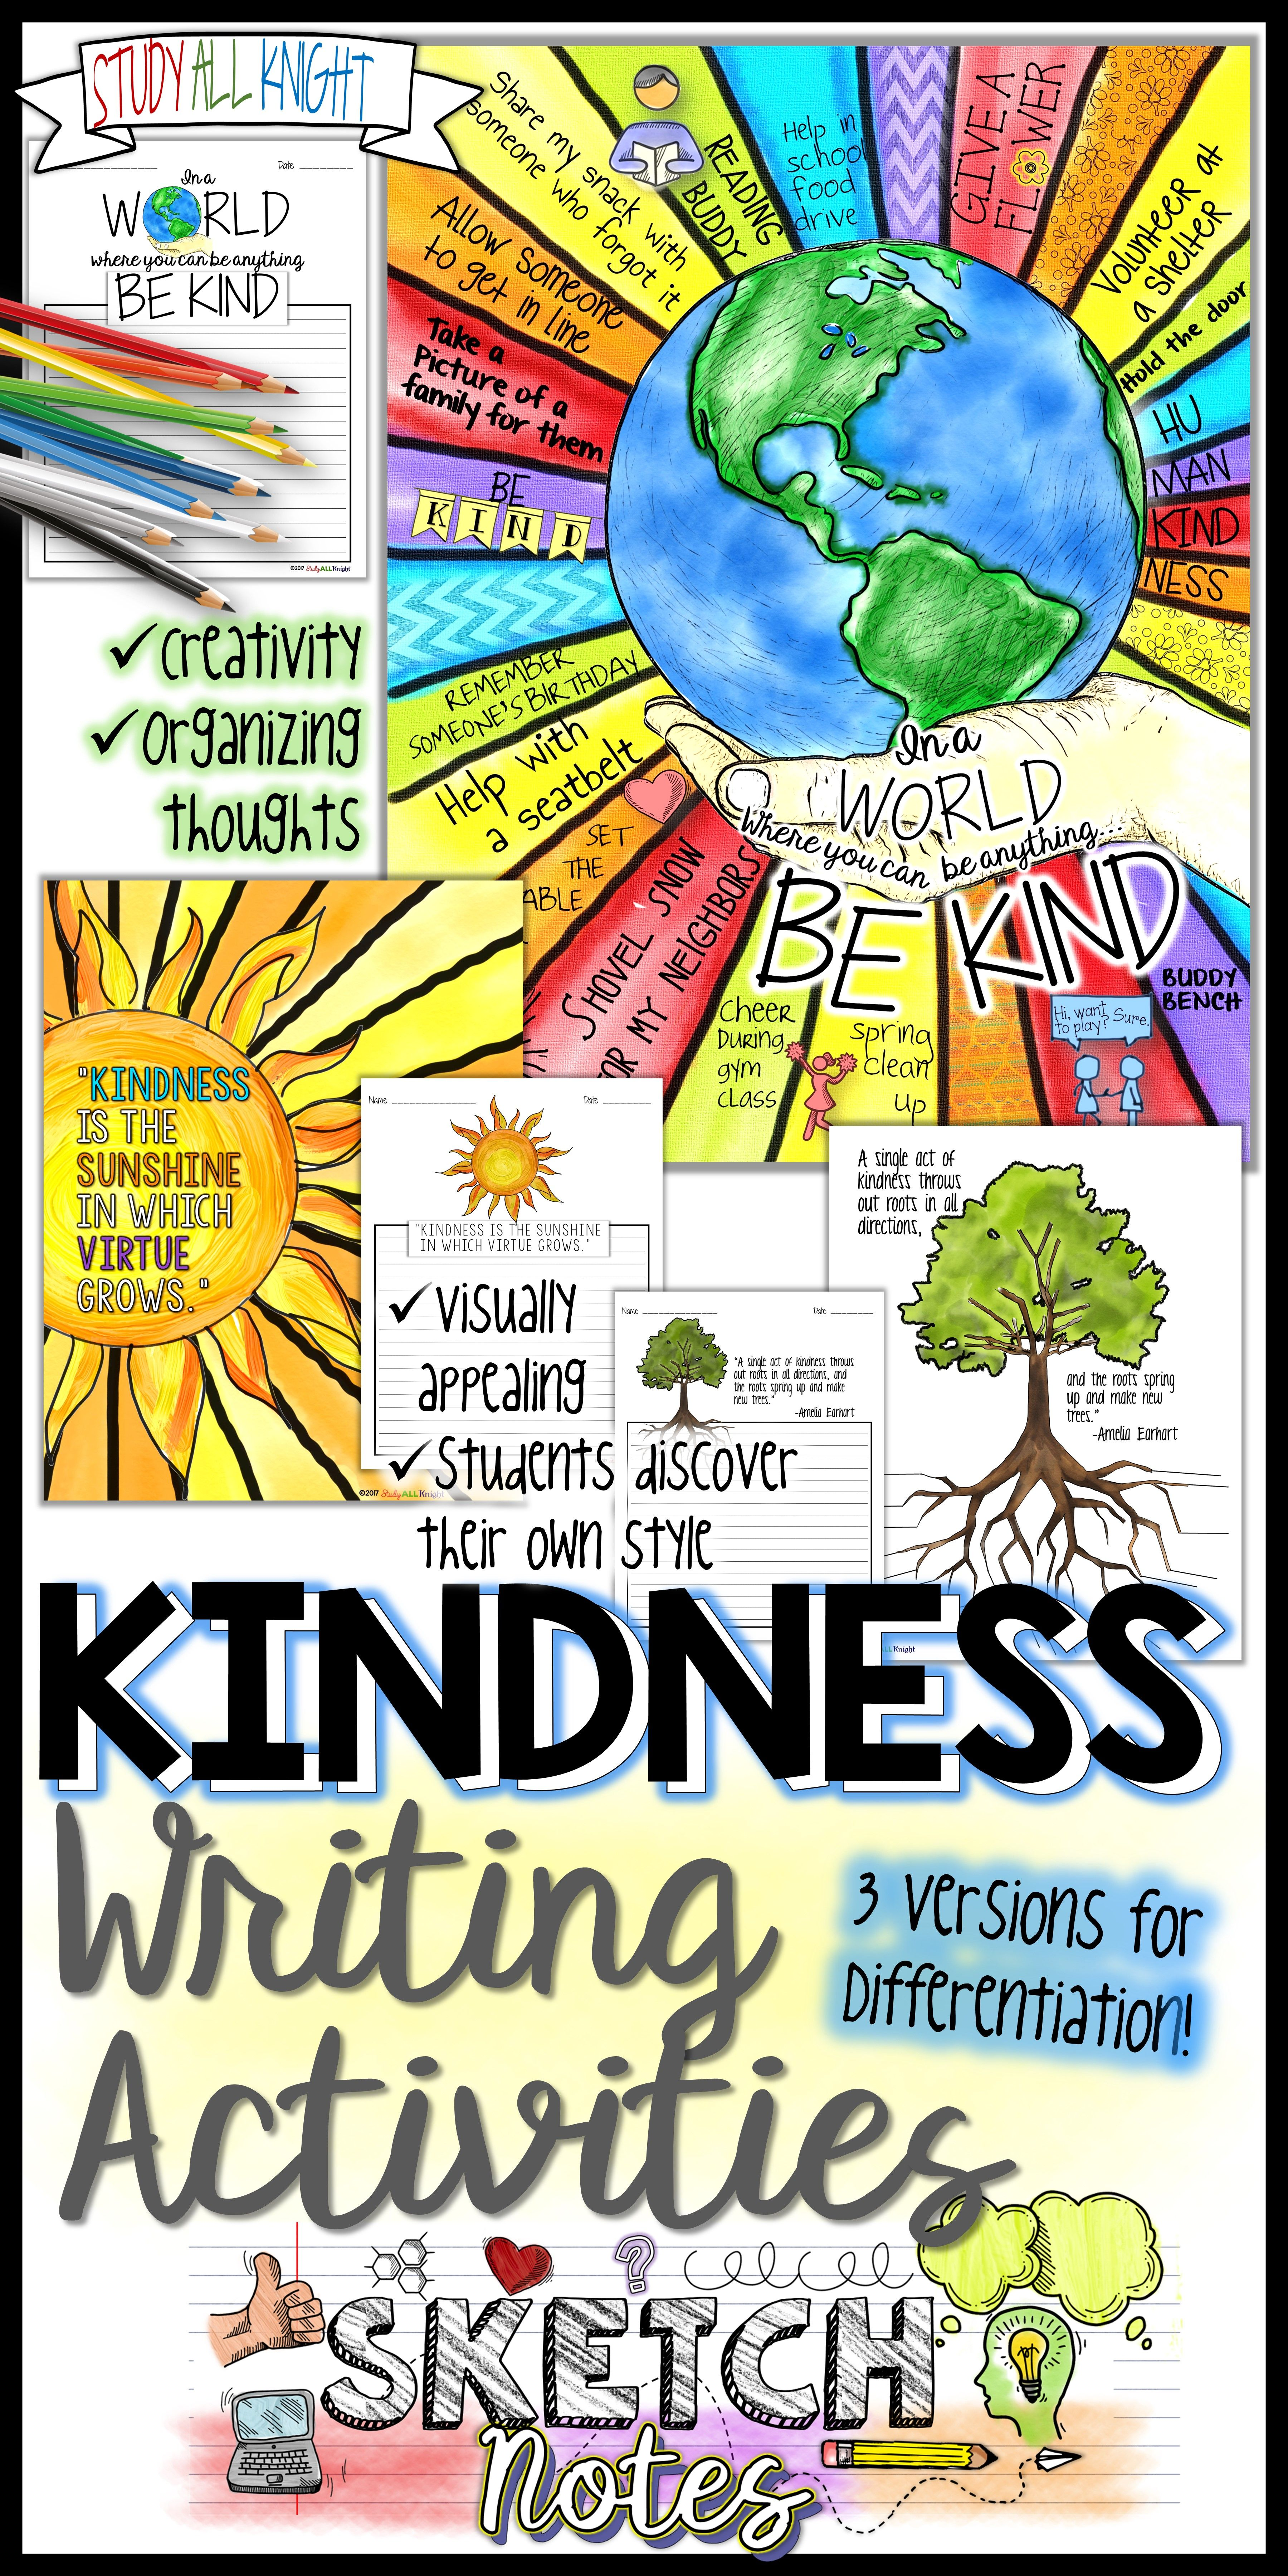 Kindness Writing Activity Quotes Student Choices Sketchnotes Teacher Instructions Kindness